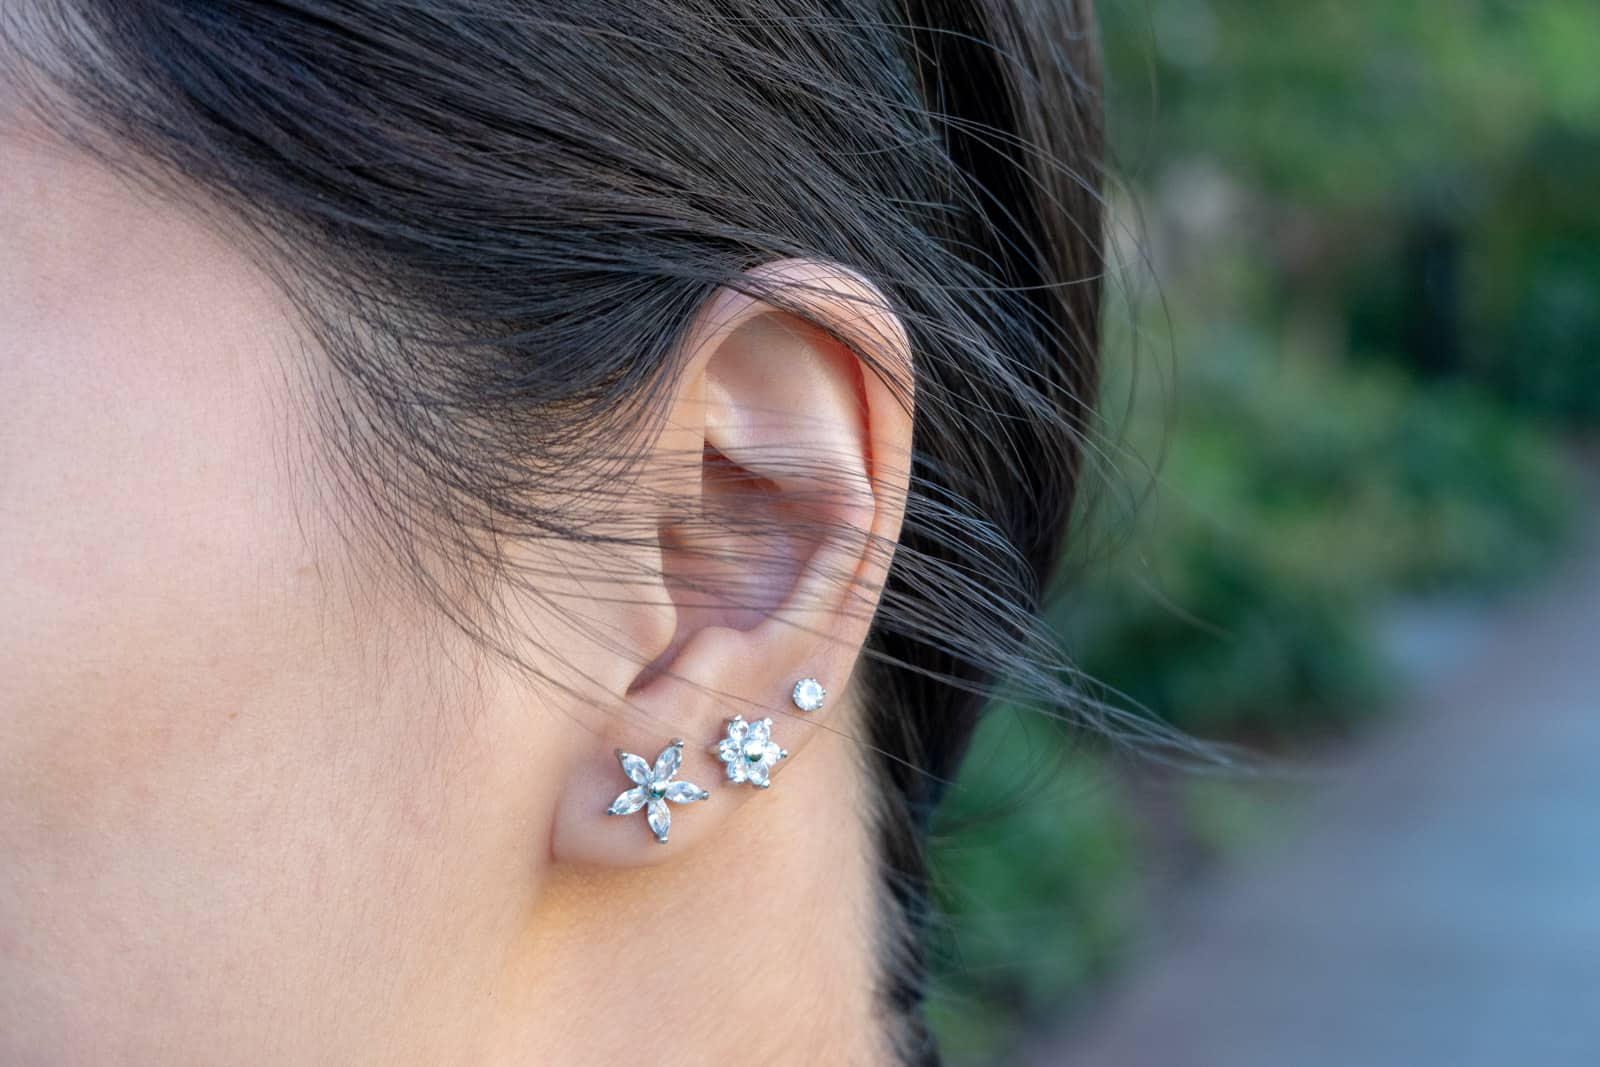 A close-up of a woman's ear with three cubic zirconia studs studs in the lobe. Two of the studs resemble flowers and the other is a simple stud